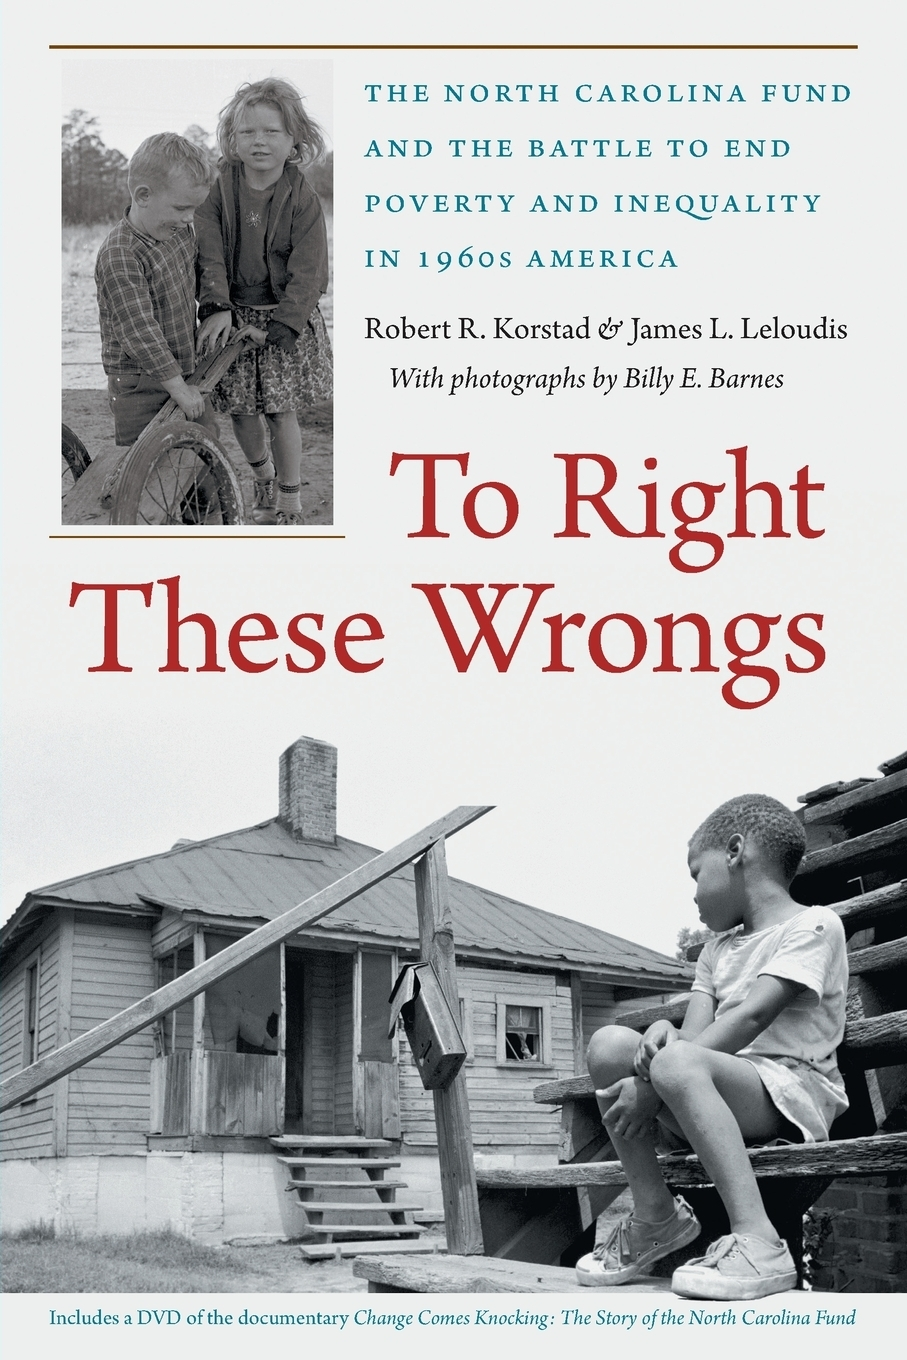 Robert R. Korstad. To Right These Wrongs